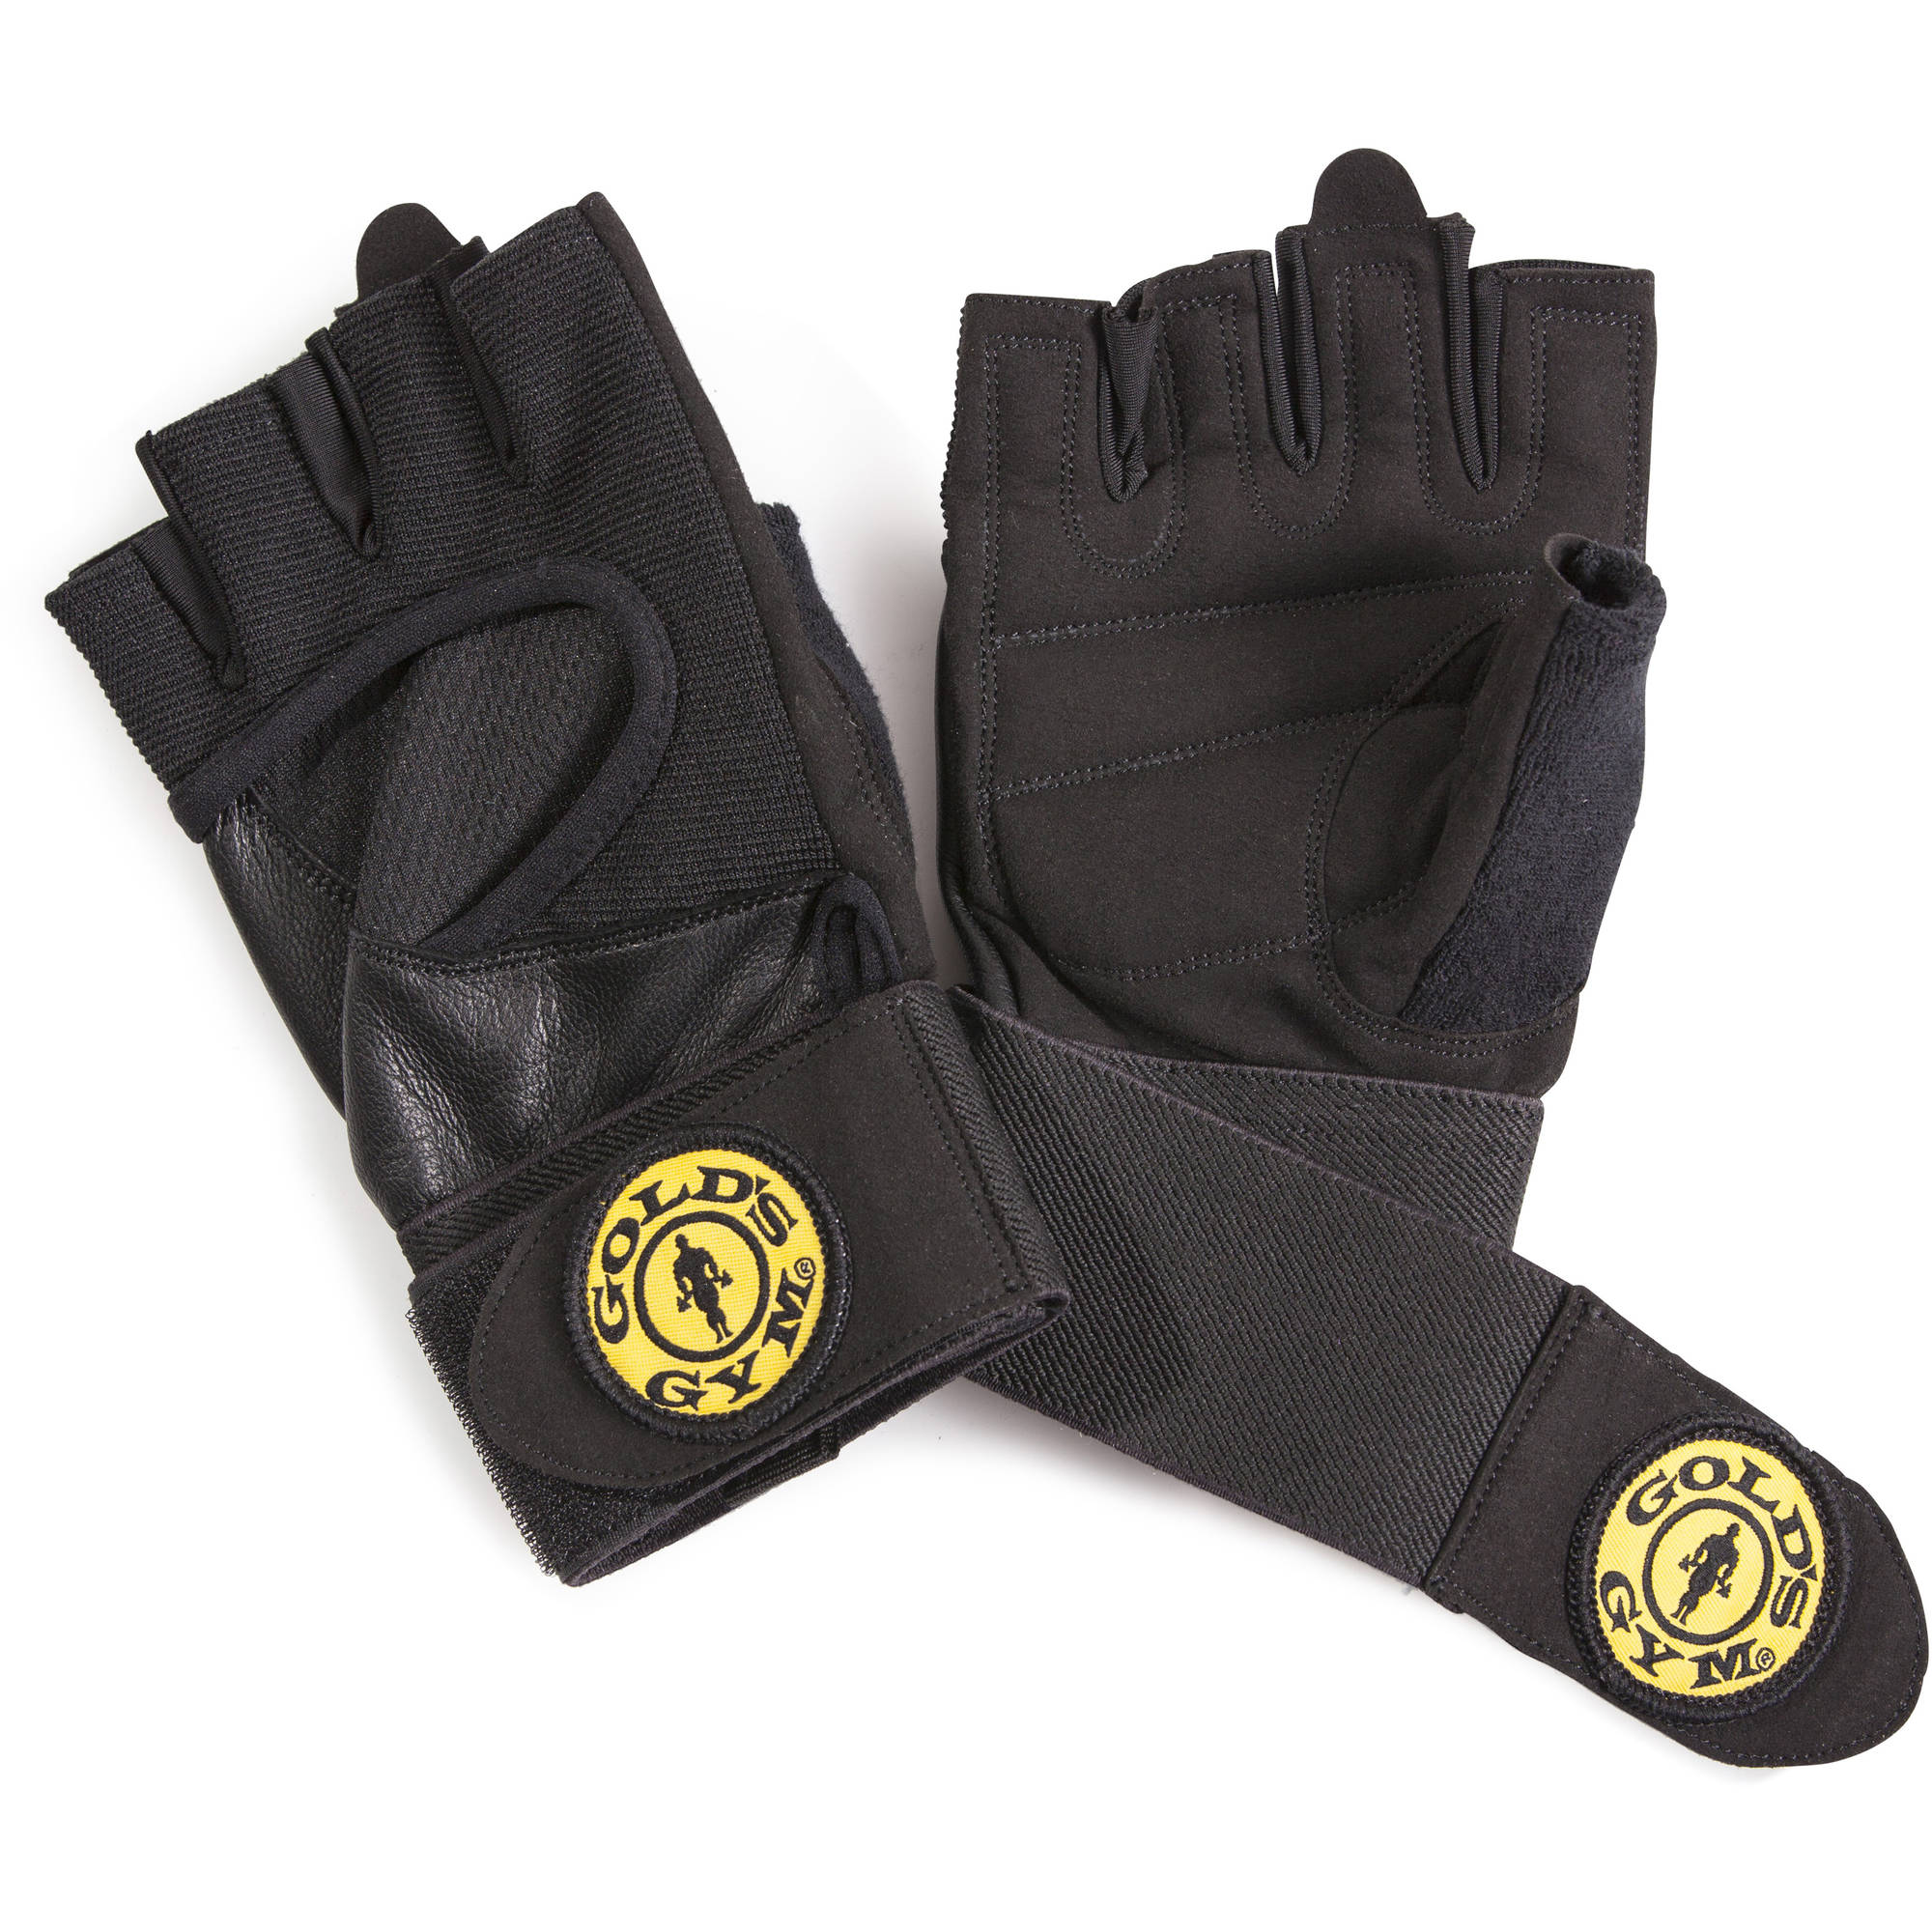 Gold's Gym Wrist Wrap Gloves